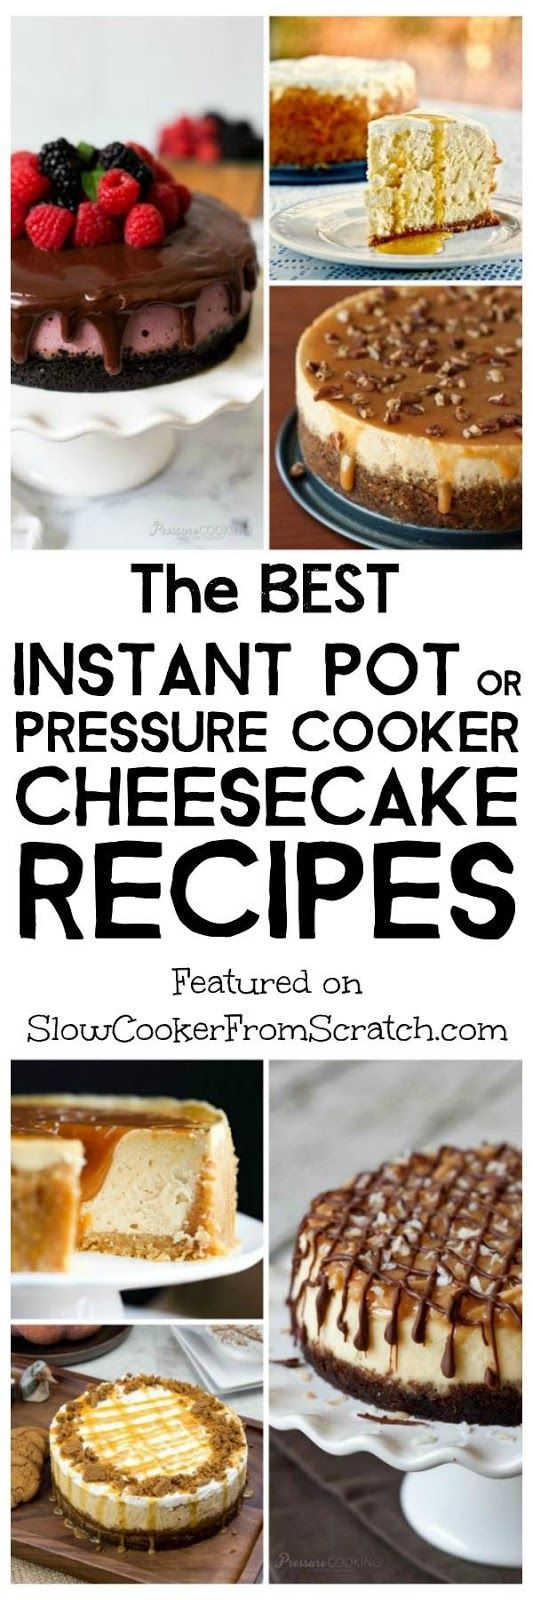 If you've been wanting to try making cheesecake in the Instant Pot, here are The BEST Instant Pot or Pressure Cooker Cheesecake Recipes from bloggers around the web. There are pressure cooker cheesecakes of every kind here, including a couple of low-carb cheesecake recipes!  [featured on Slow Cooker or Pressure Cooker at SlowCookerFromScratch.com] #InstantPot #PressureCooker #InstantPotCheesecake